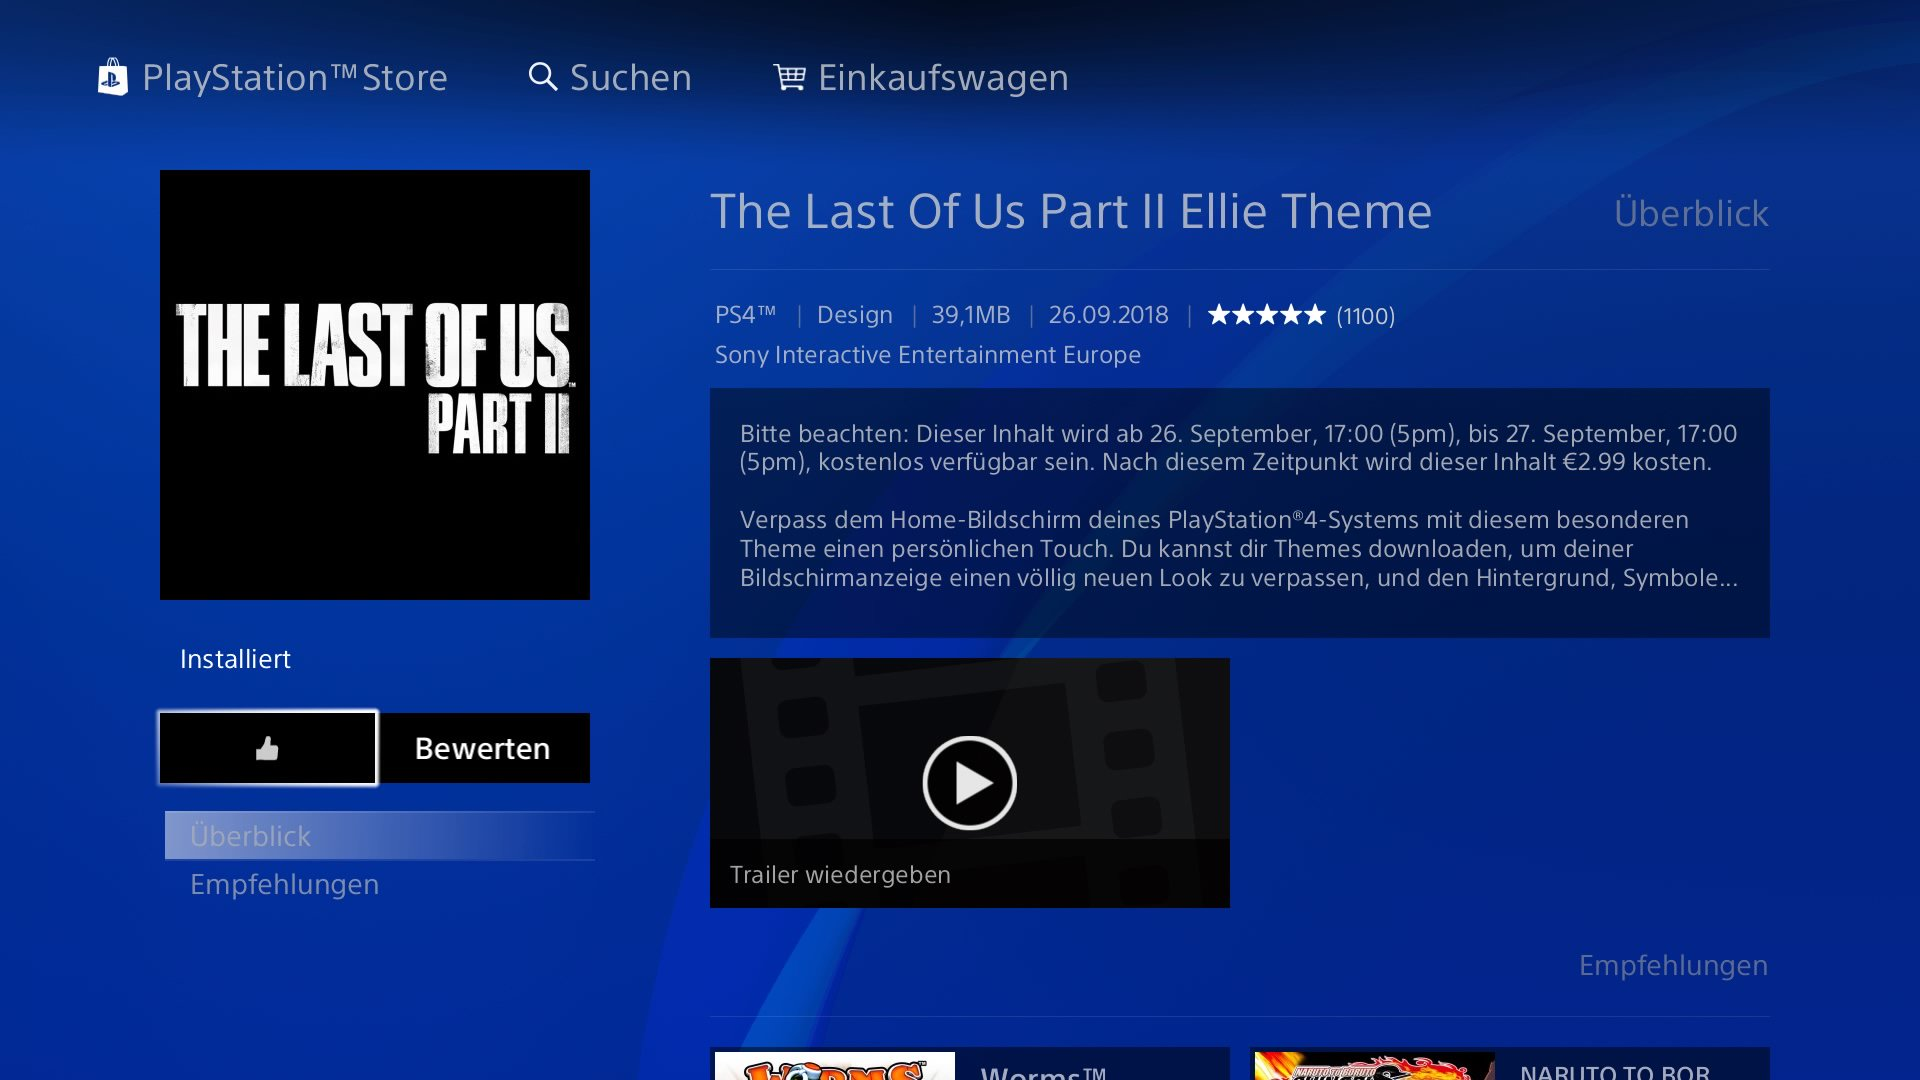 PS4 Store Screenshot - The Last of Us Part II - Ellie Theme